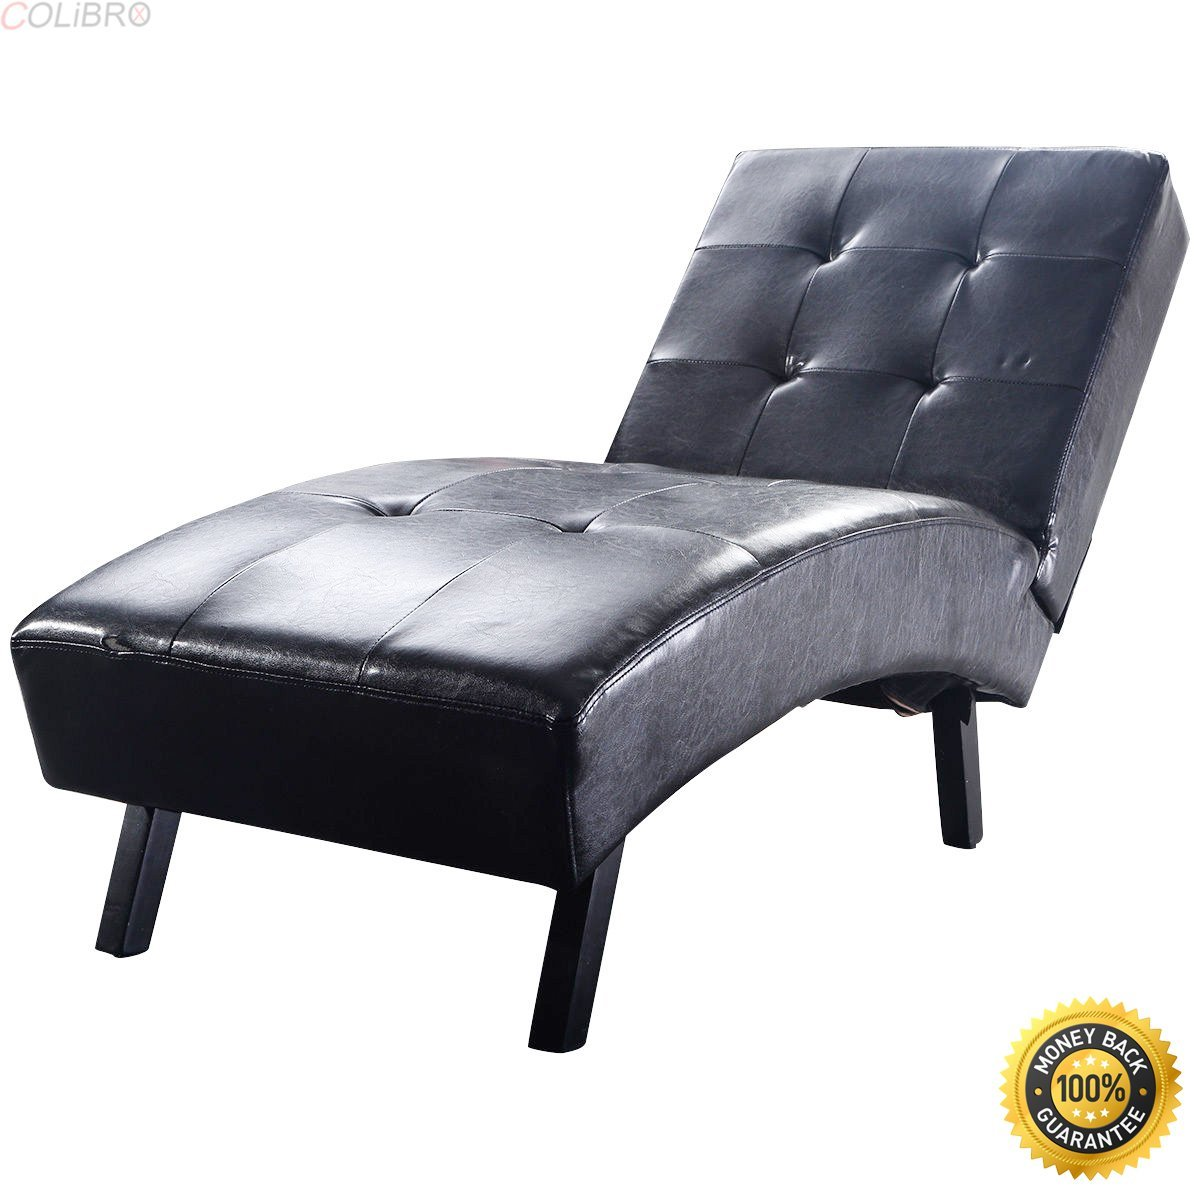 COLIBROX--New Modern Chaise Lounge Leather Chair Armless Furniture Living Room Black,armchair cheap,Soft Modern Arm Chair,cheap living room chairs,living room chair,chairs for sale cheap